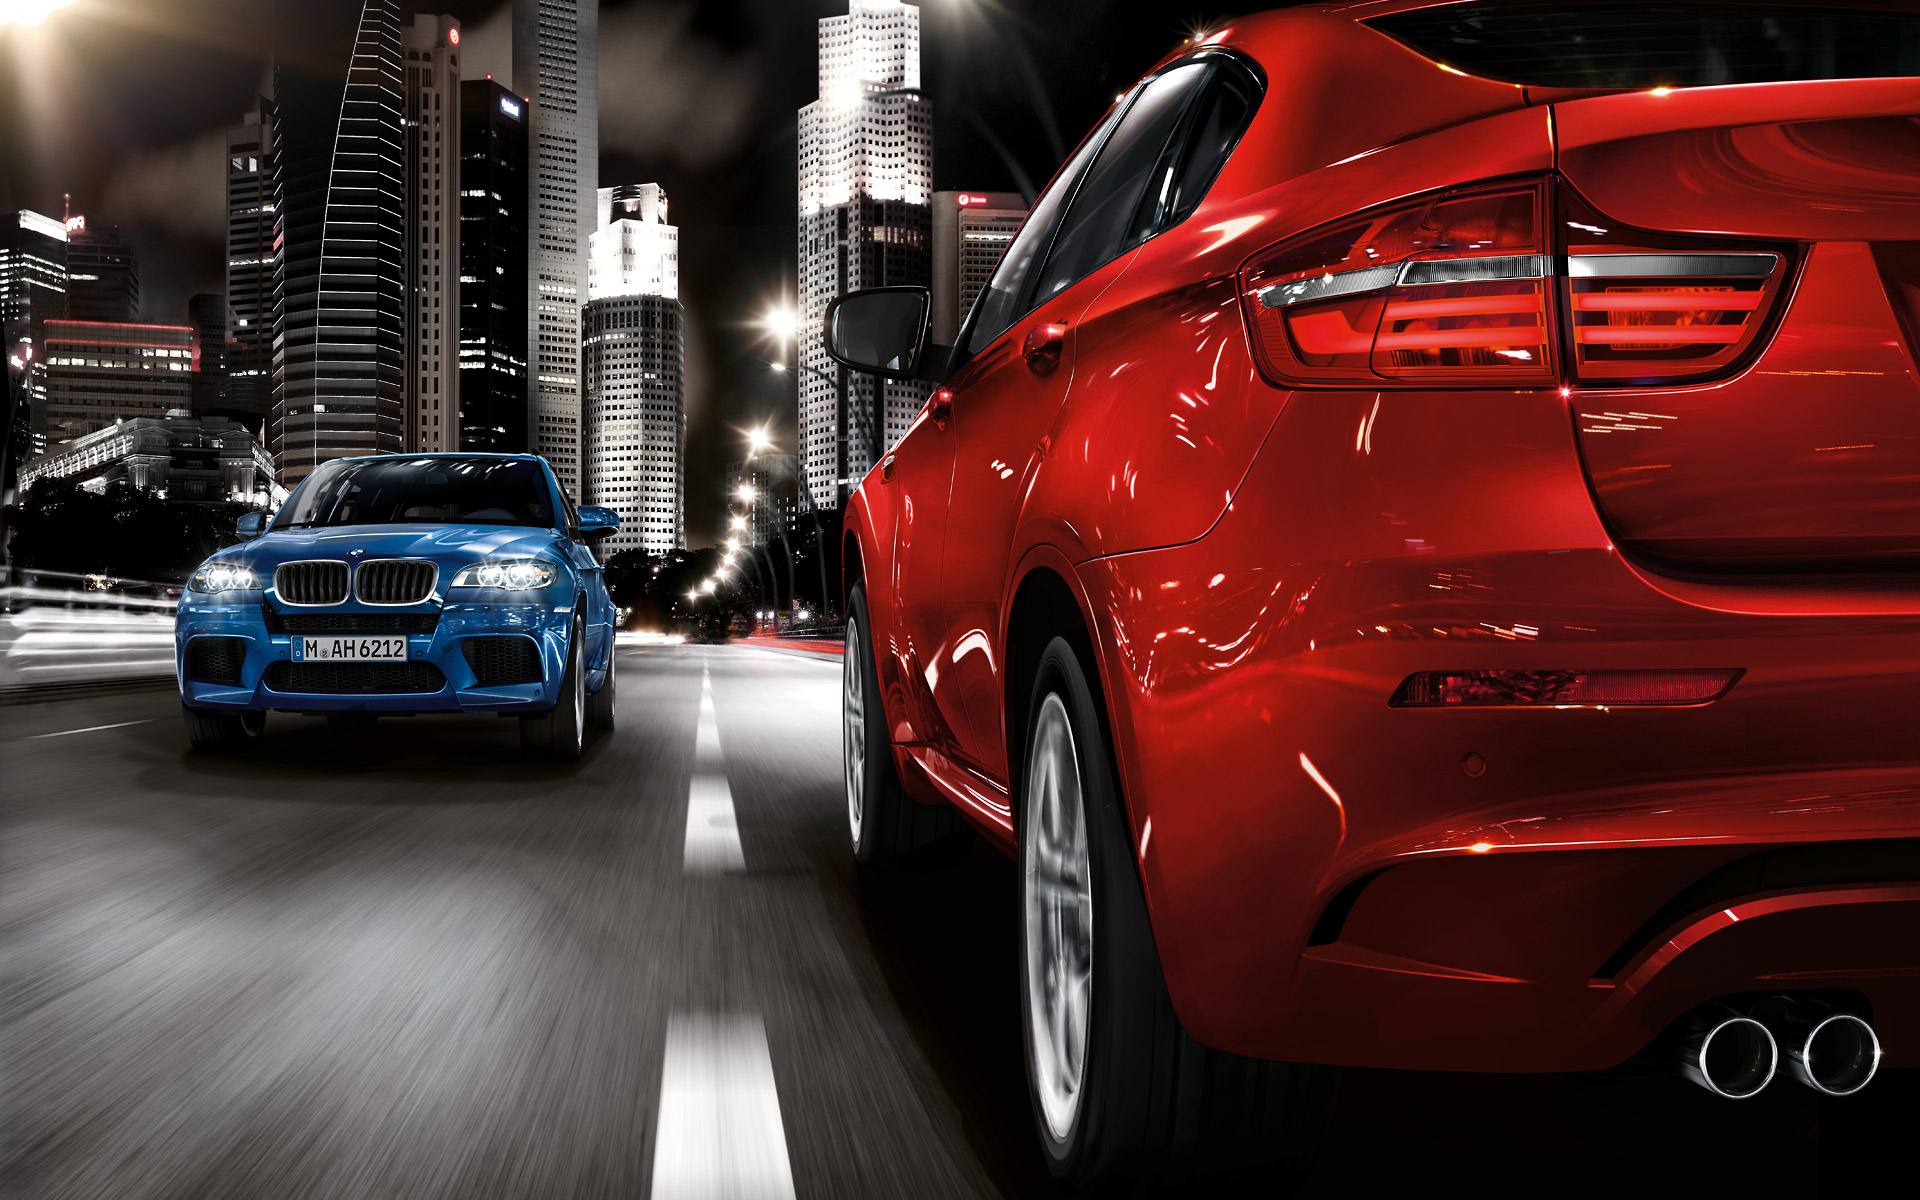 U S Pricing Announced For 2013 Bmw X5 M And 2013 Bmw X6 M